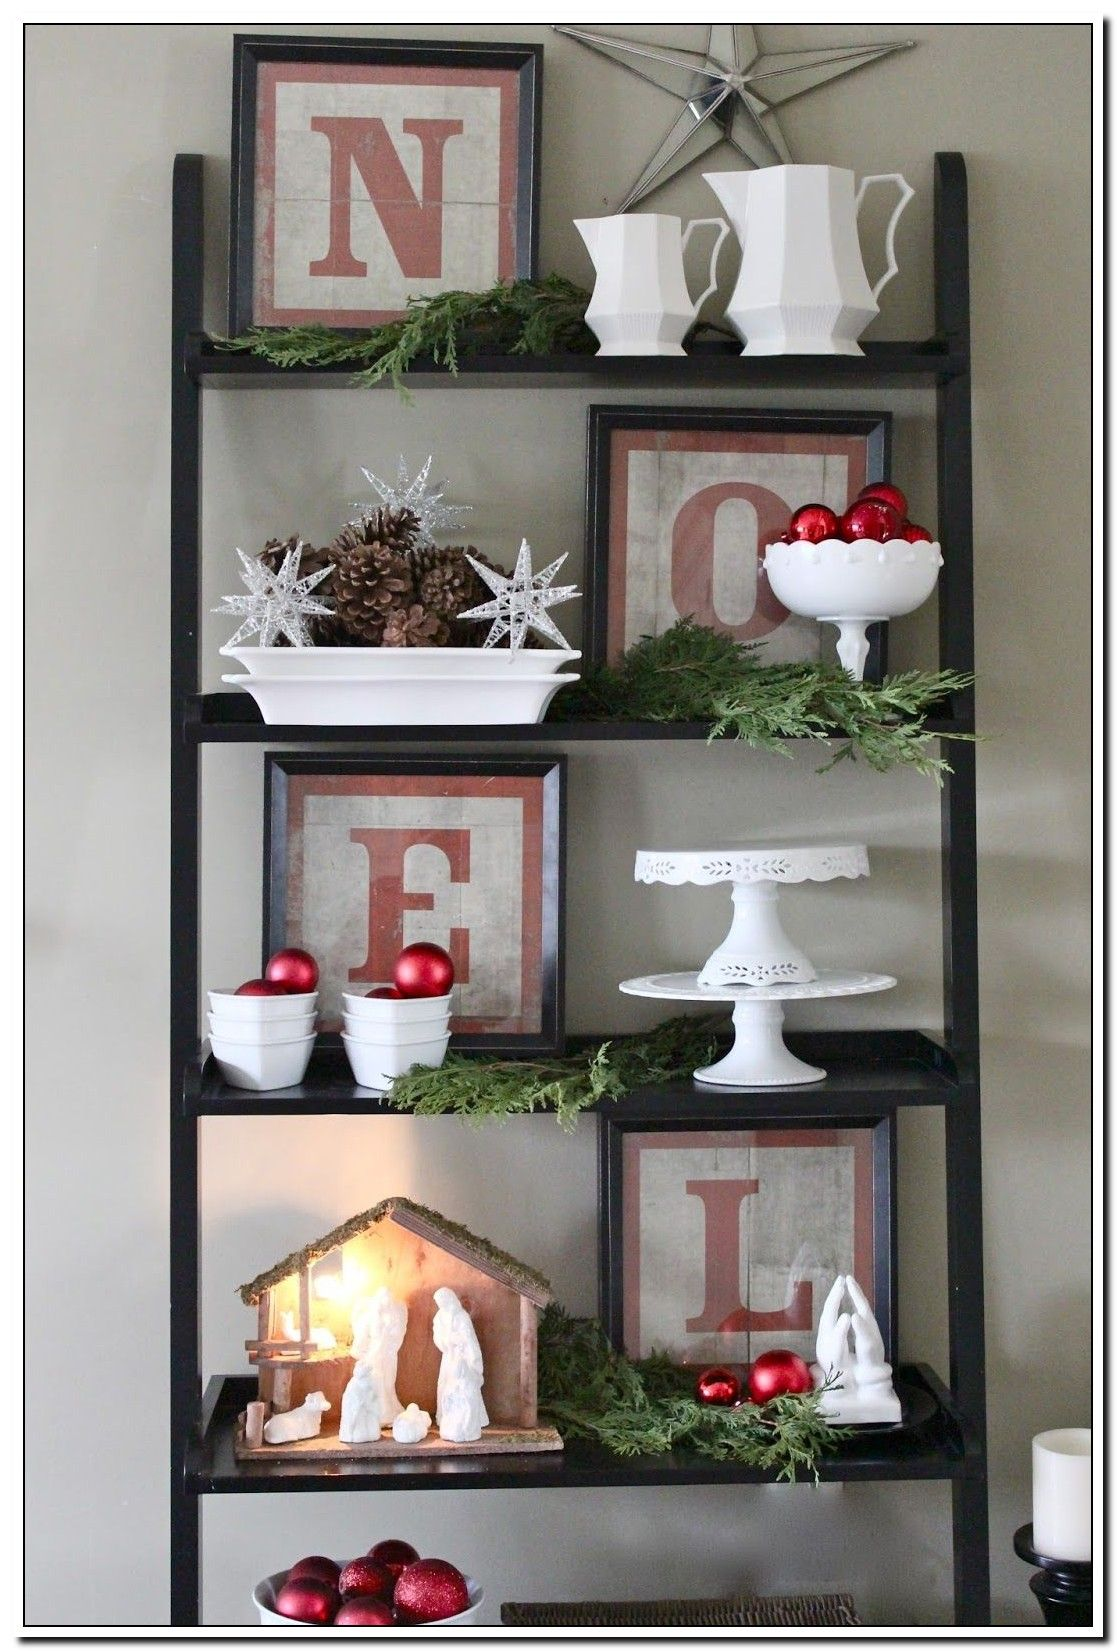 38 Reference Of Kitchen Shelves Christmas Decor Christmas Bookshelf Red Christmas Decor Christmas Decorations Rustic